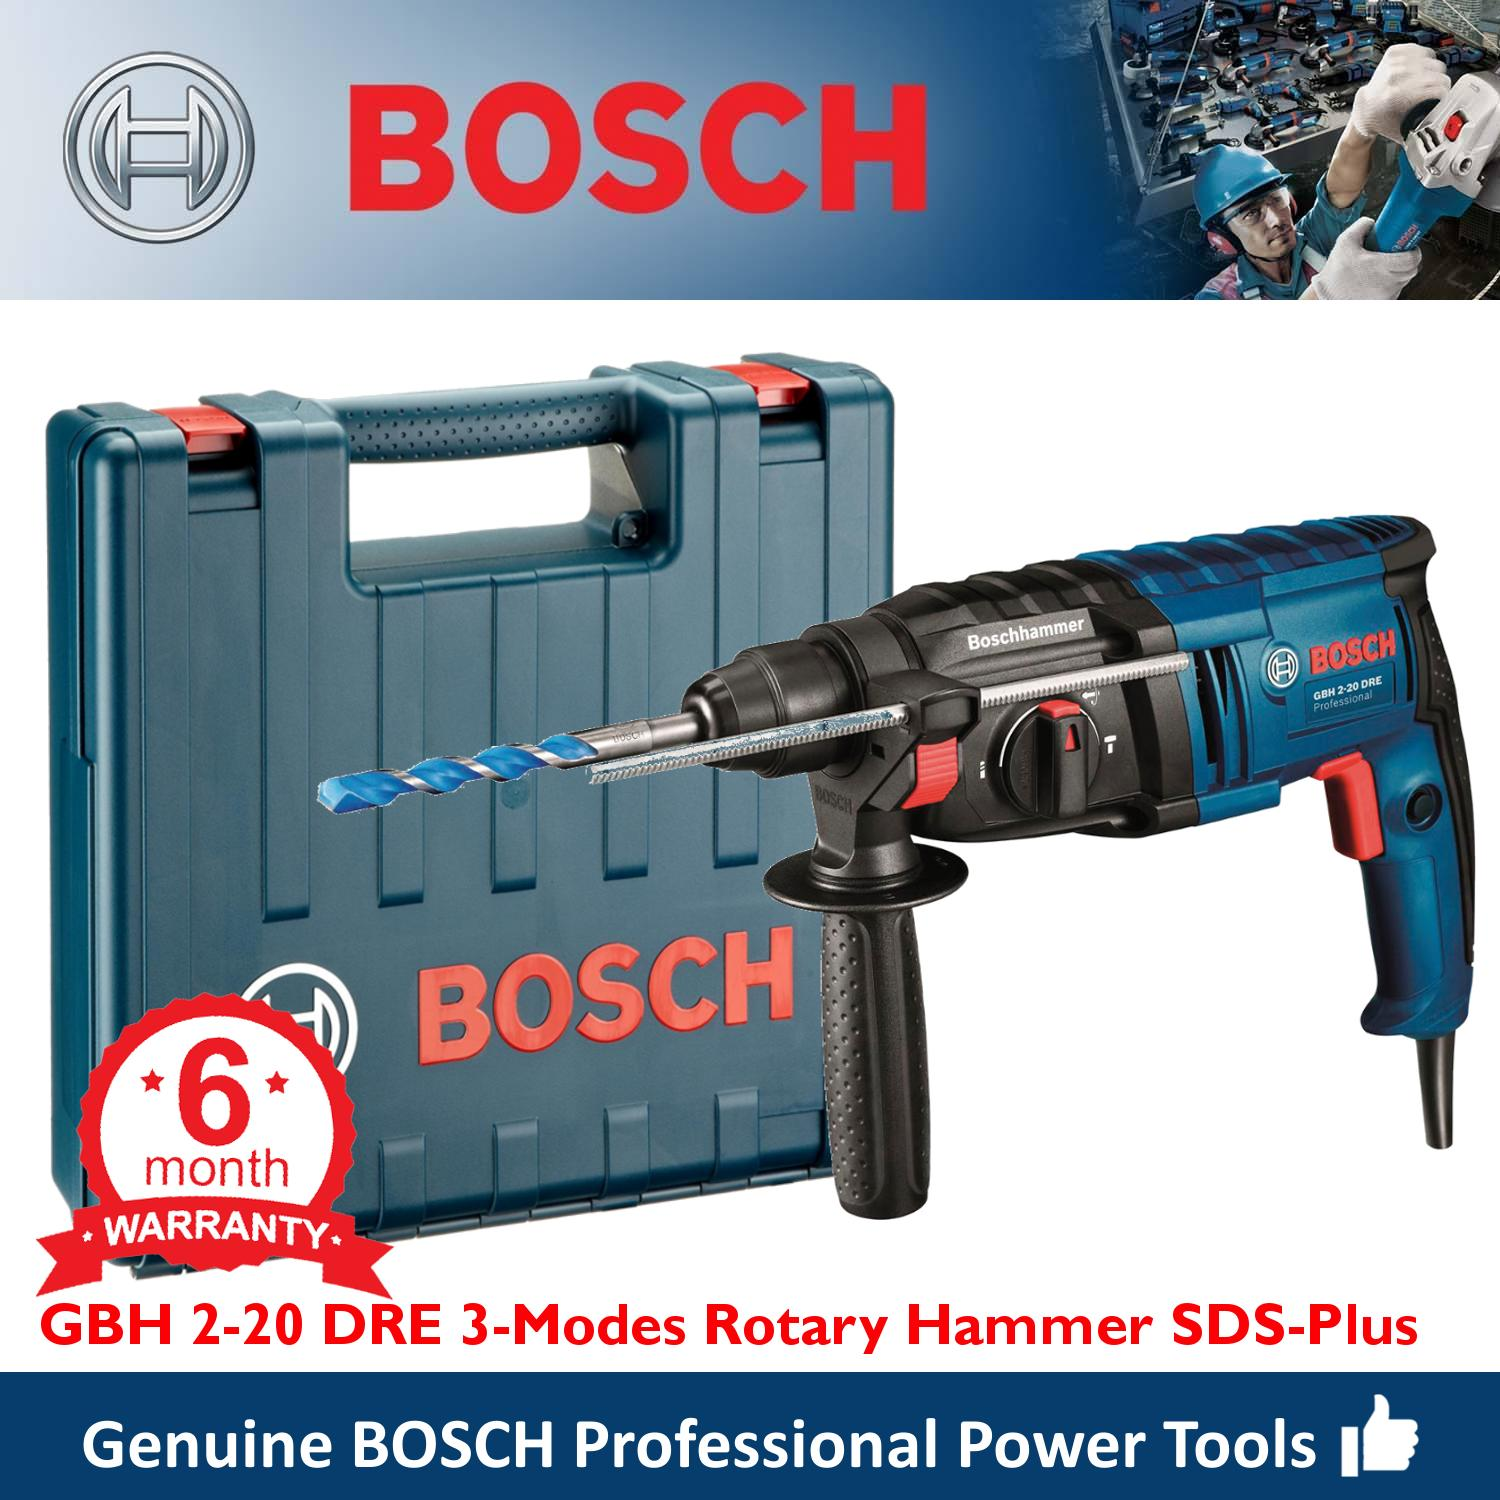 Bosch GBH 2-20 DRE Rotary Combination Hammer Drill SDS Plus 3-Modes with